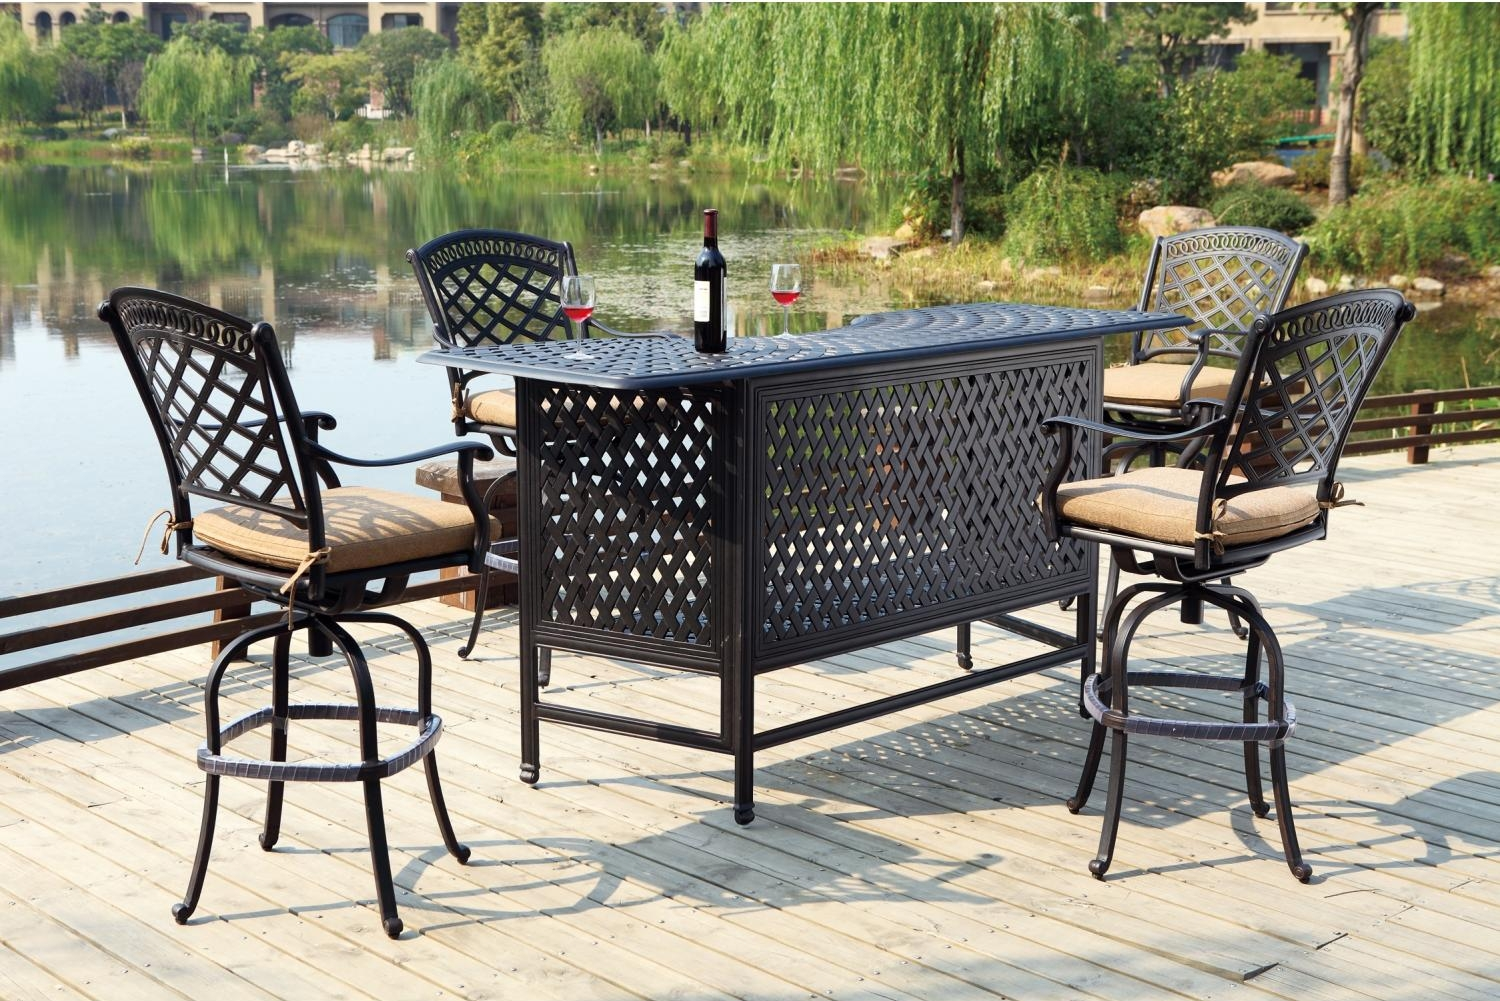 Patio furniture party bar set cast aluminum 82 5pc pub sedona for Aluminum patio furniture